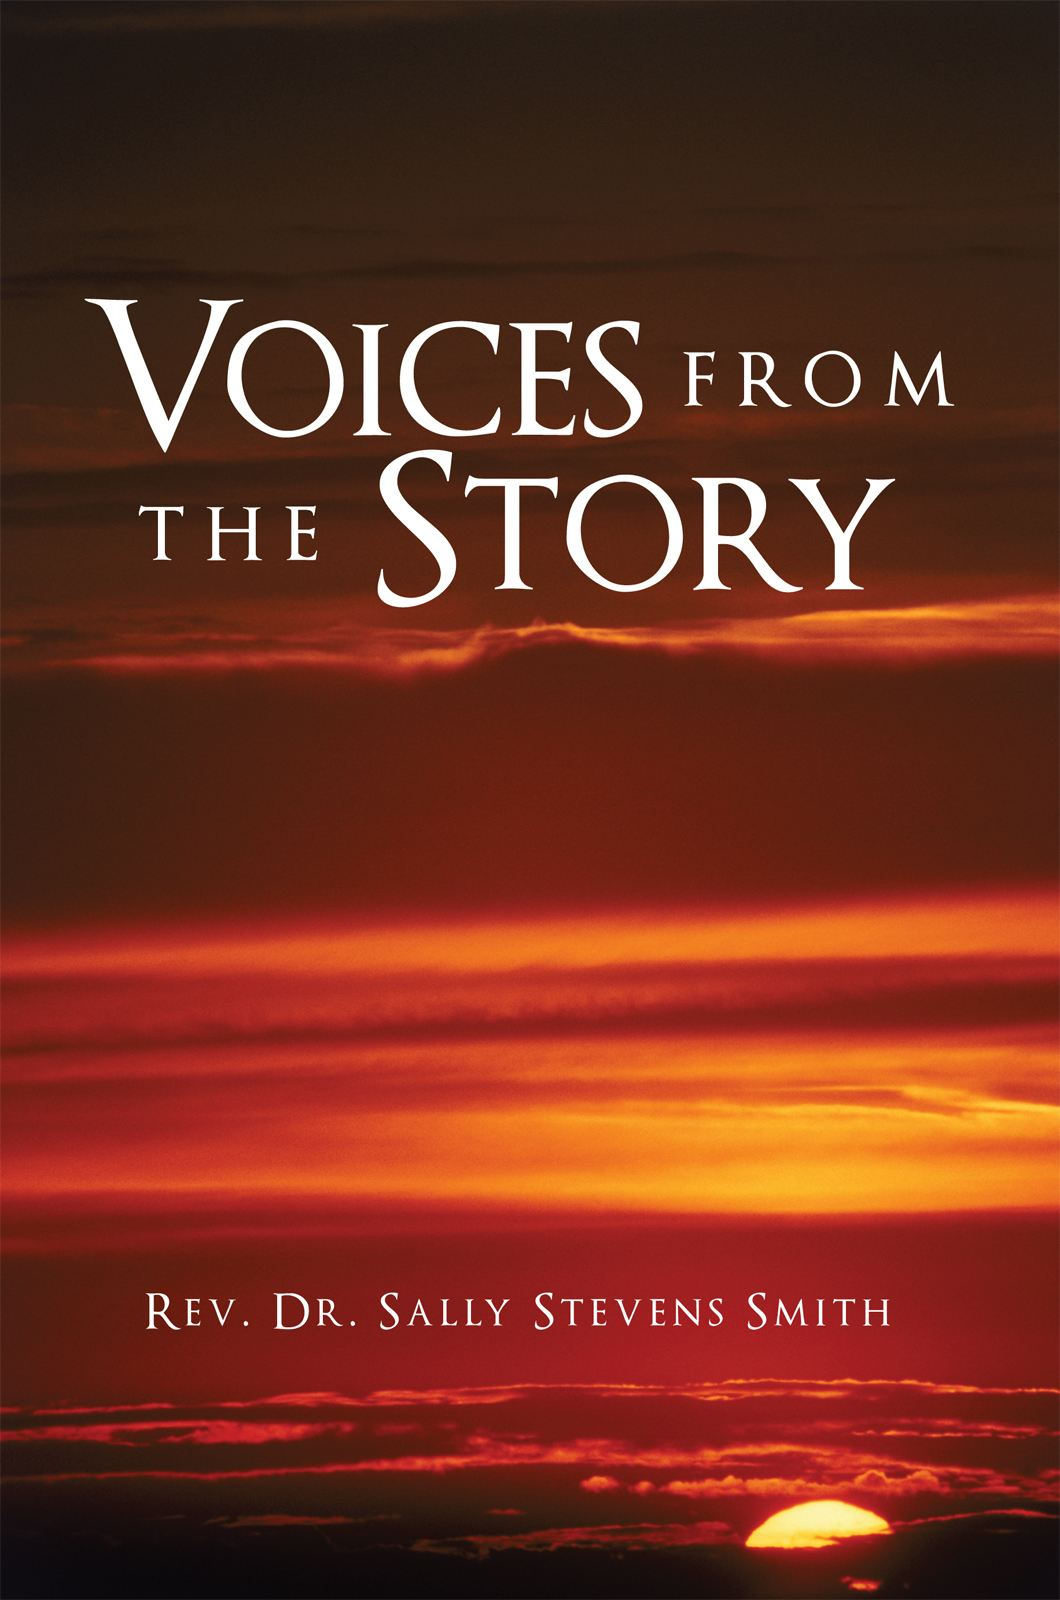 Voices from the Story By: Rev. Dr. Sally Stevens Smith